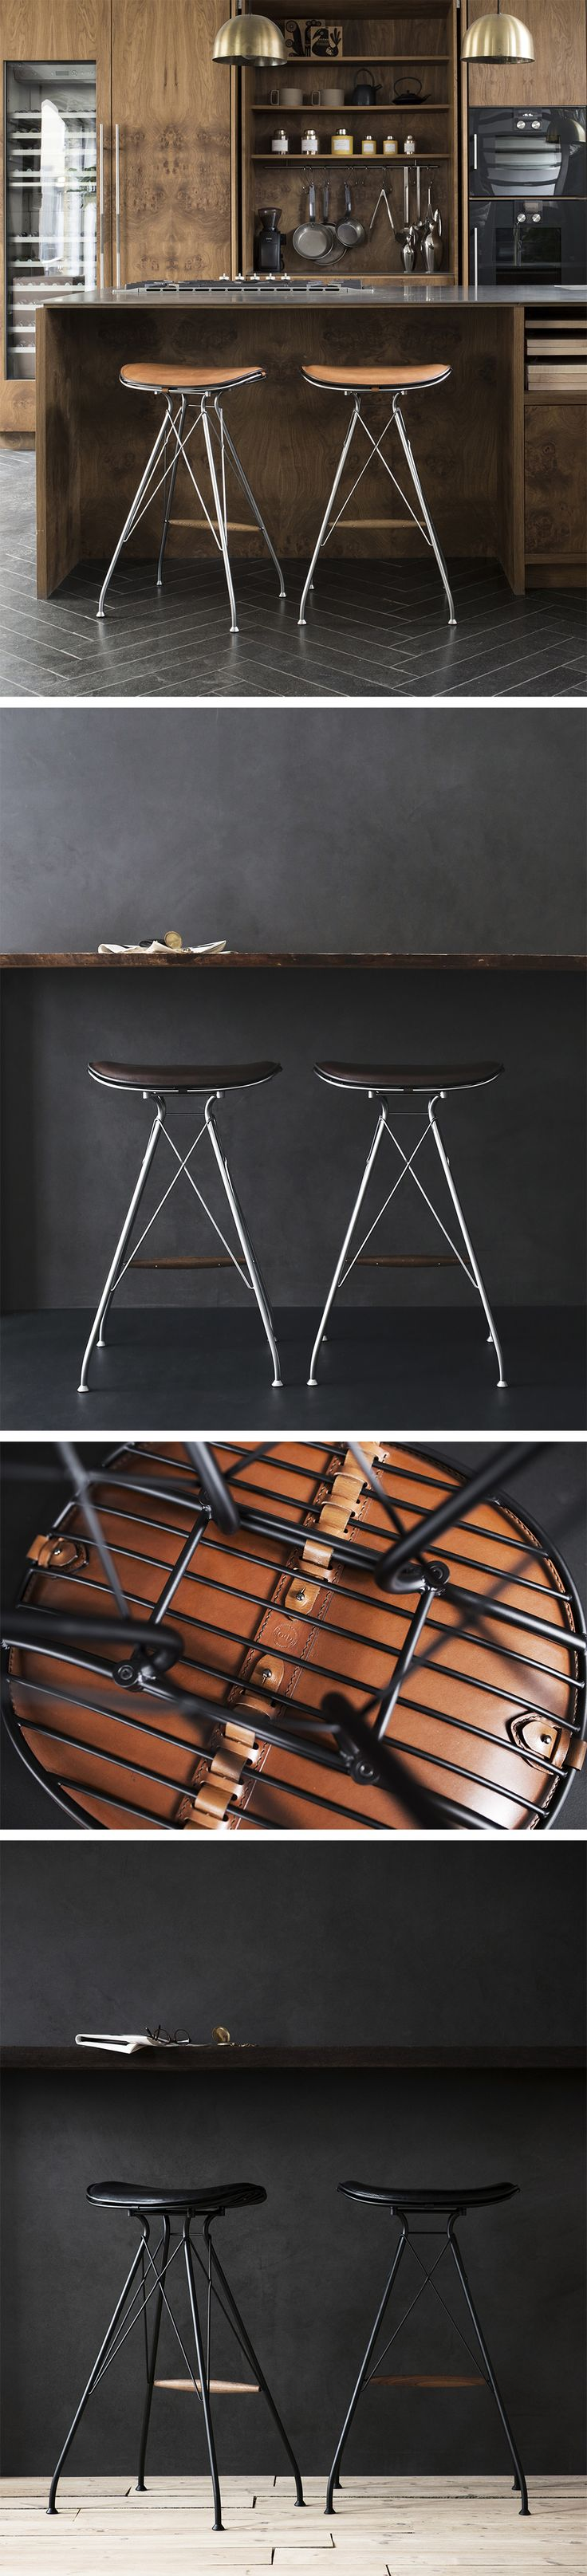 176 best furniture images on Pinterest | Chairs, Banquettes and ...